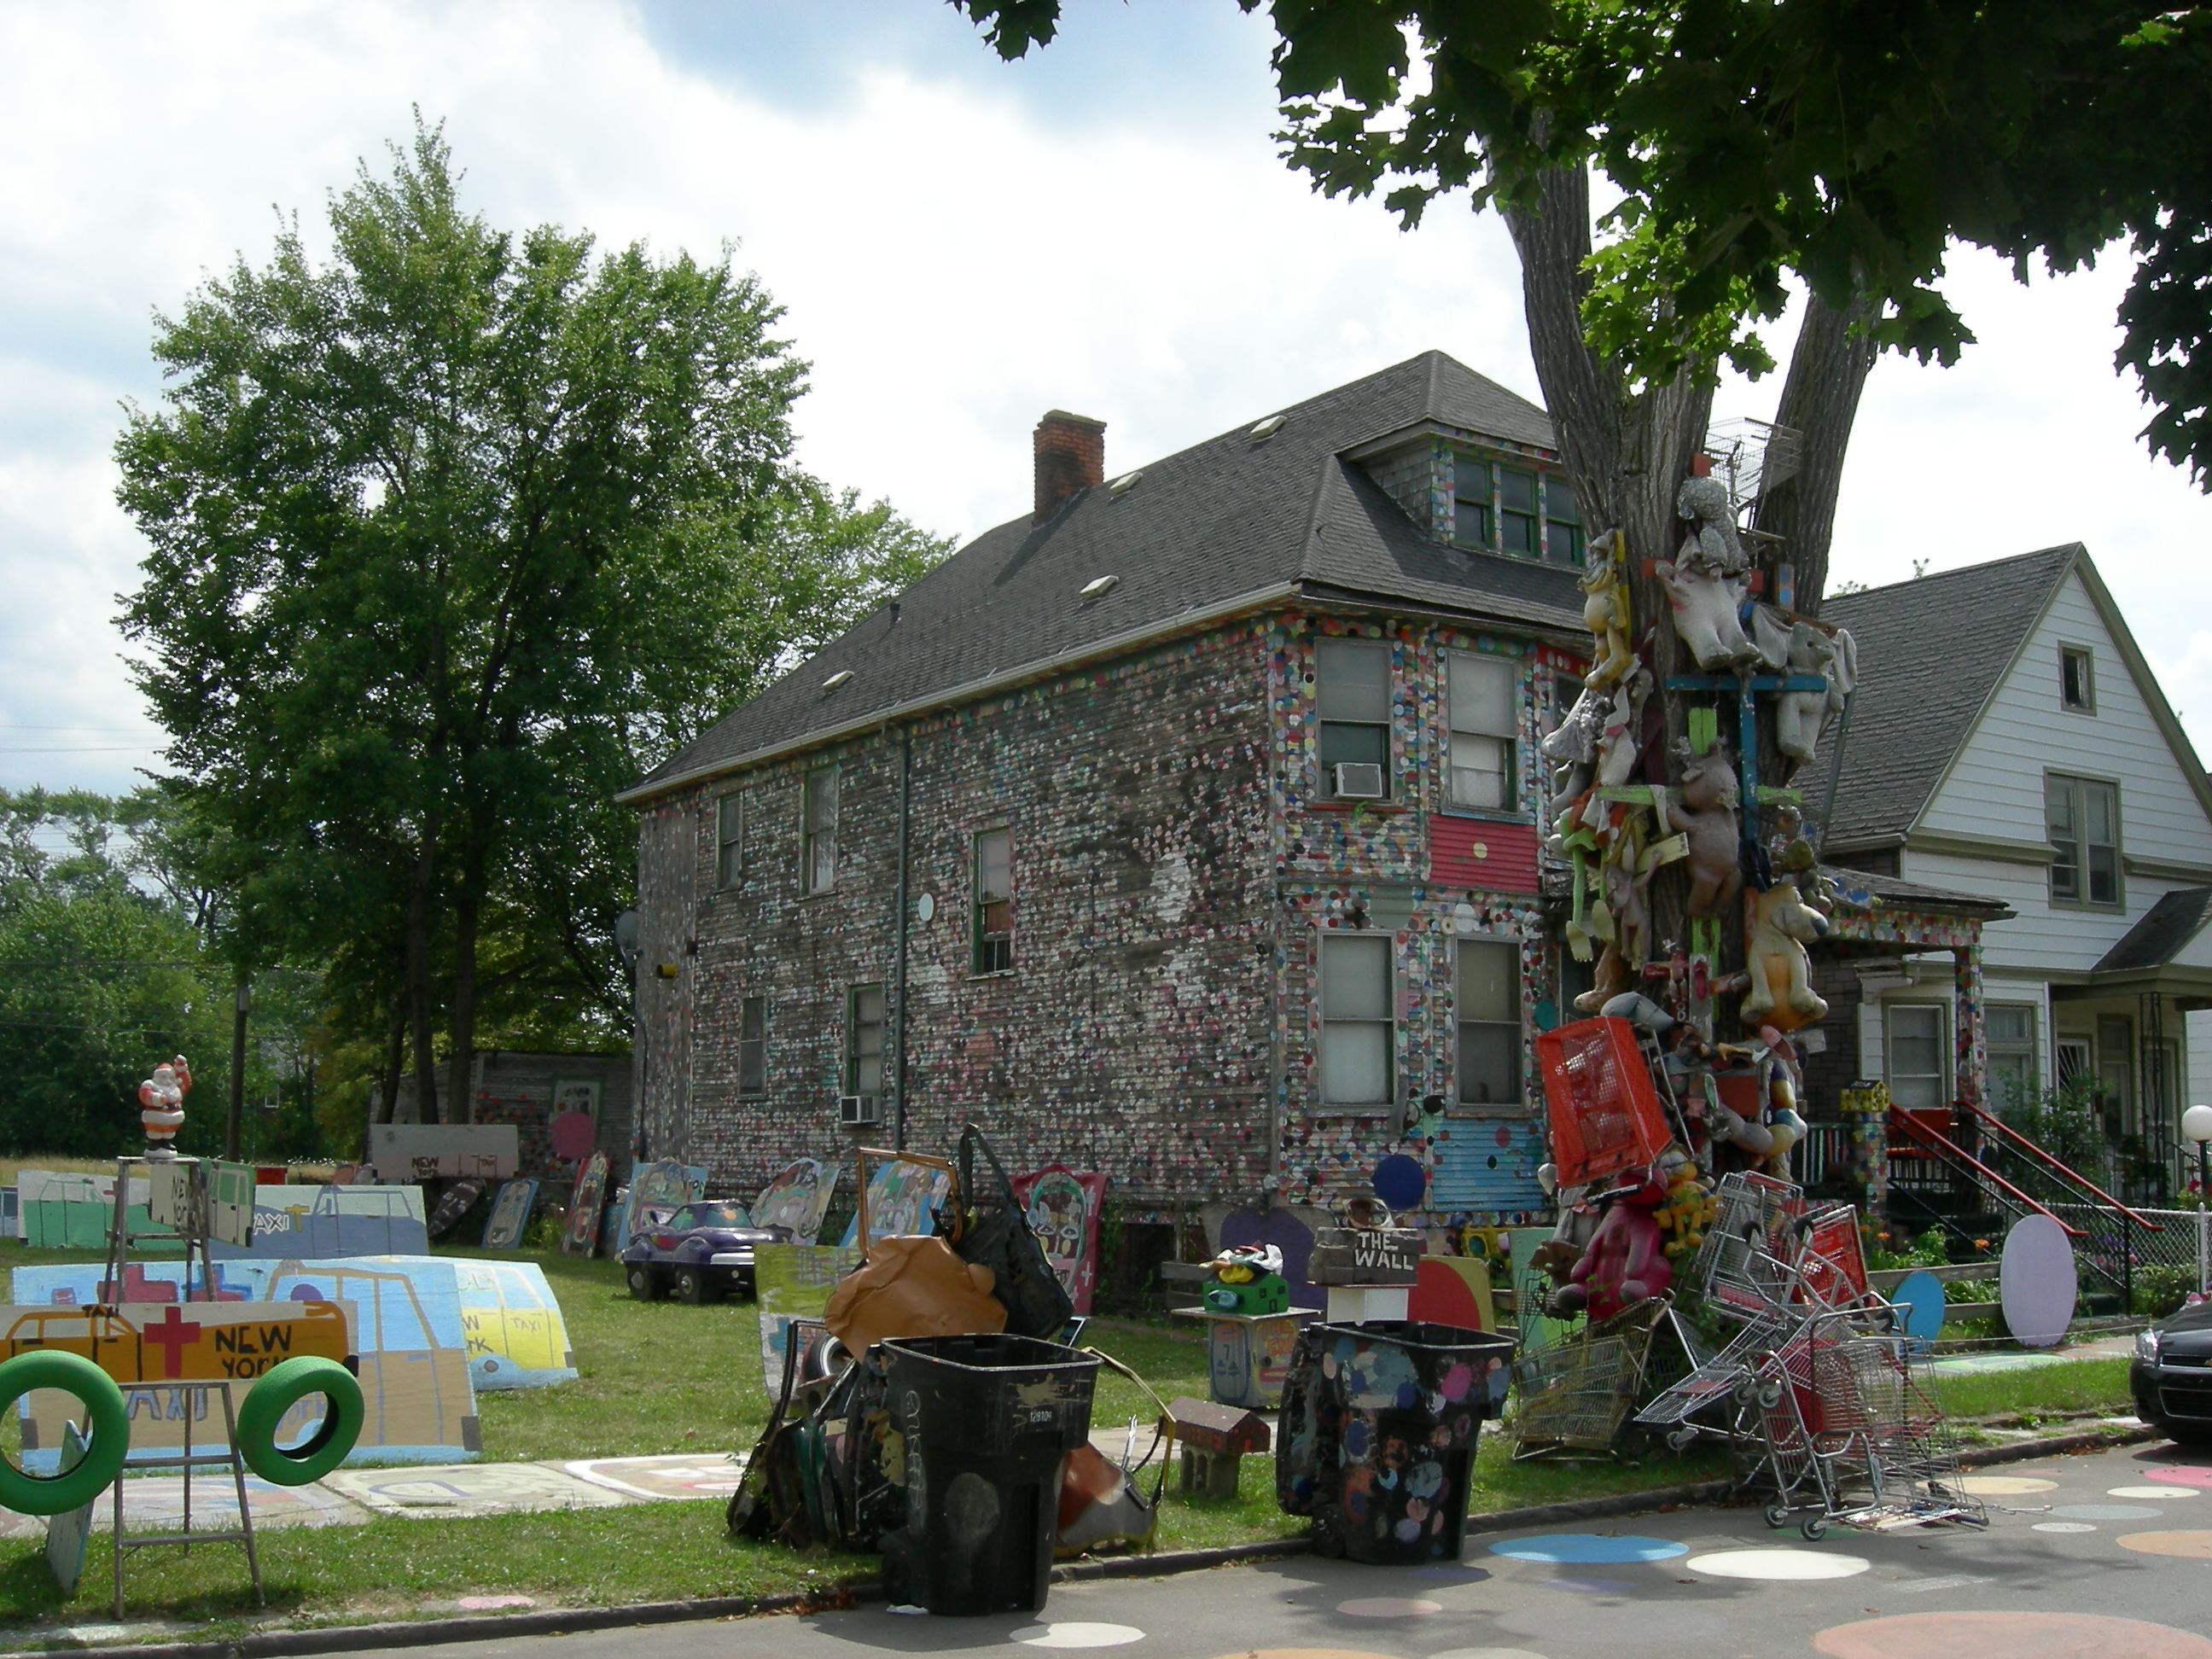 The heidelberg project houses